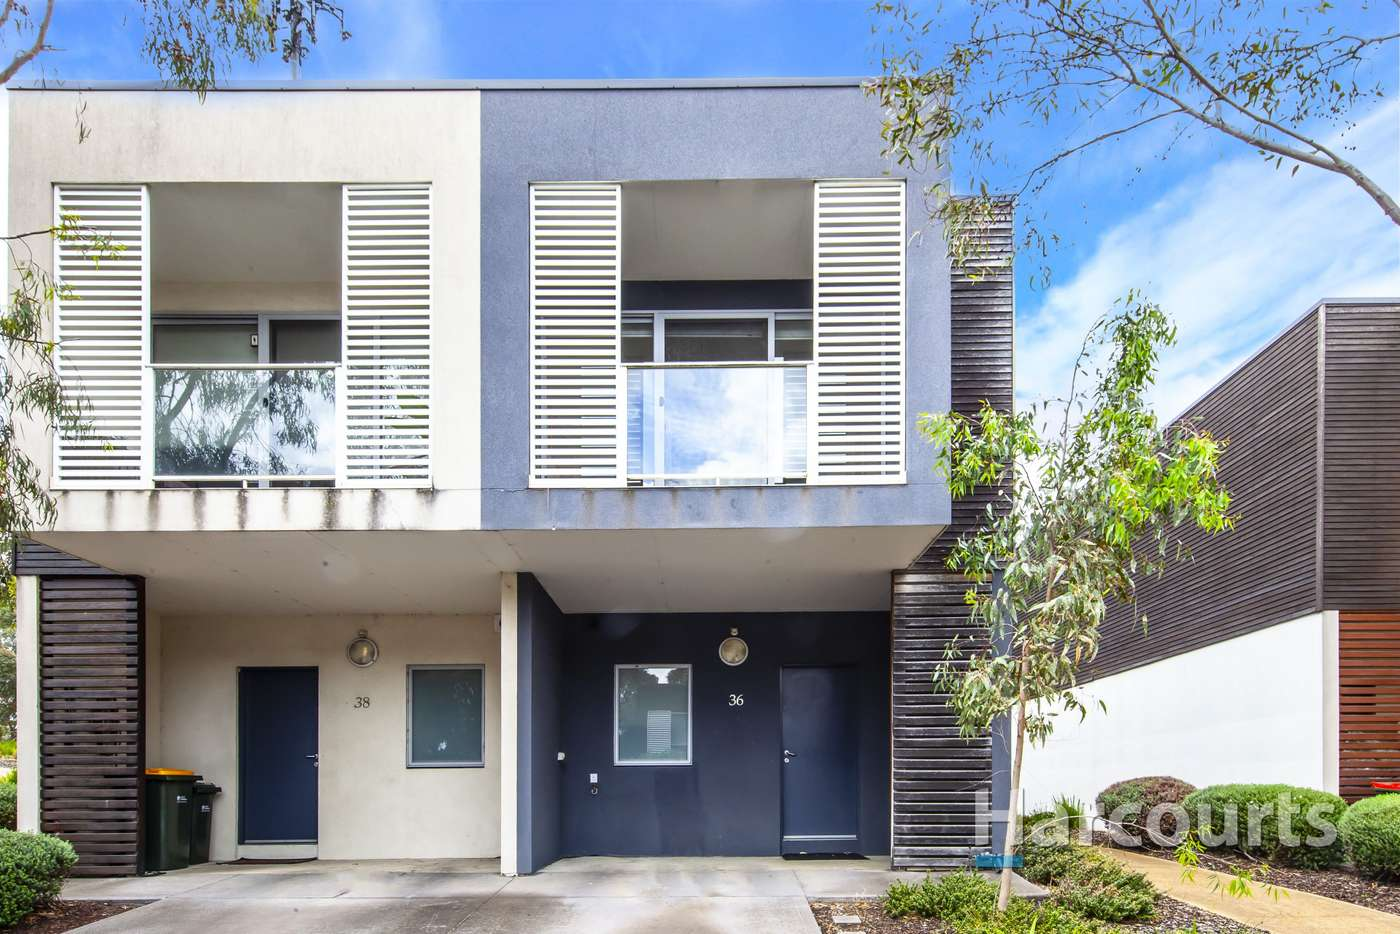 Main view of Homely townhouse listing, 36 Waxflower Crescent, Bundoora VIC 3083